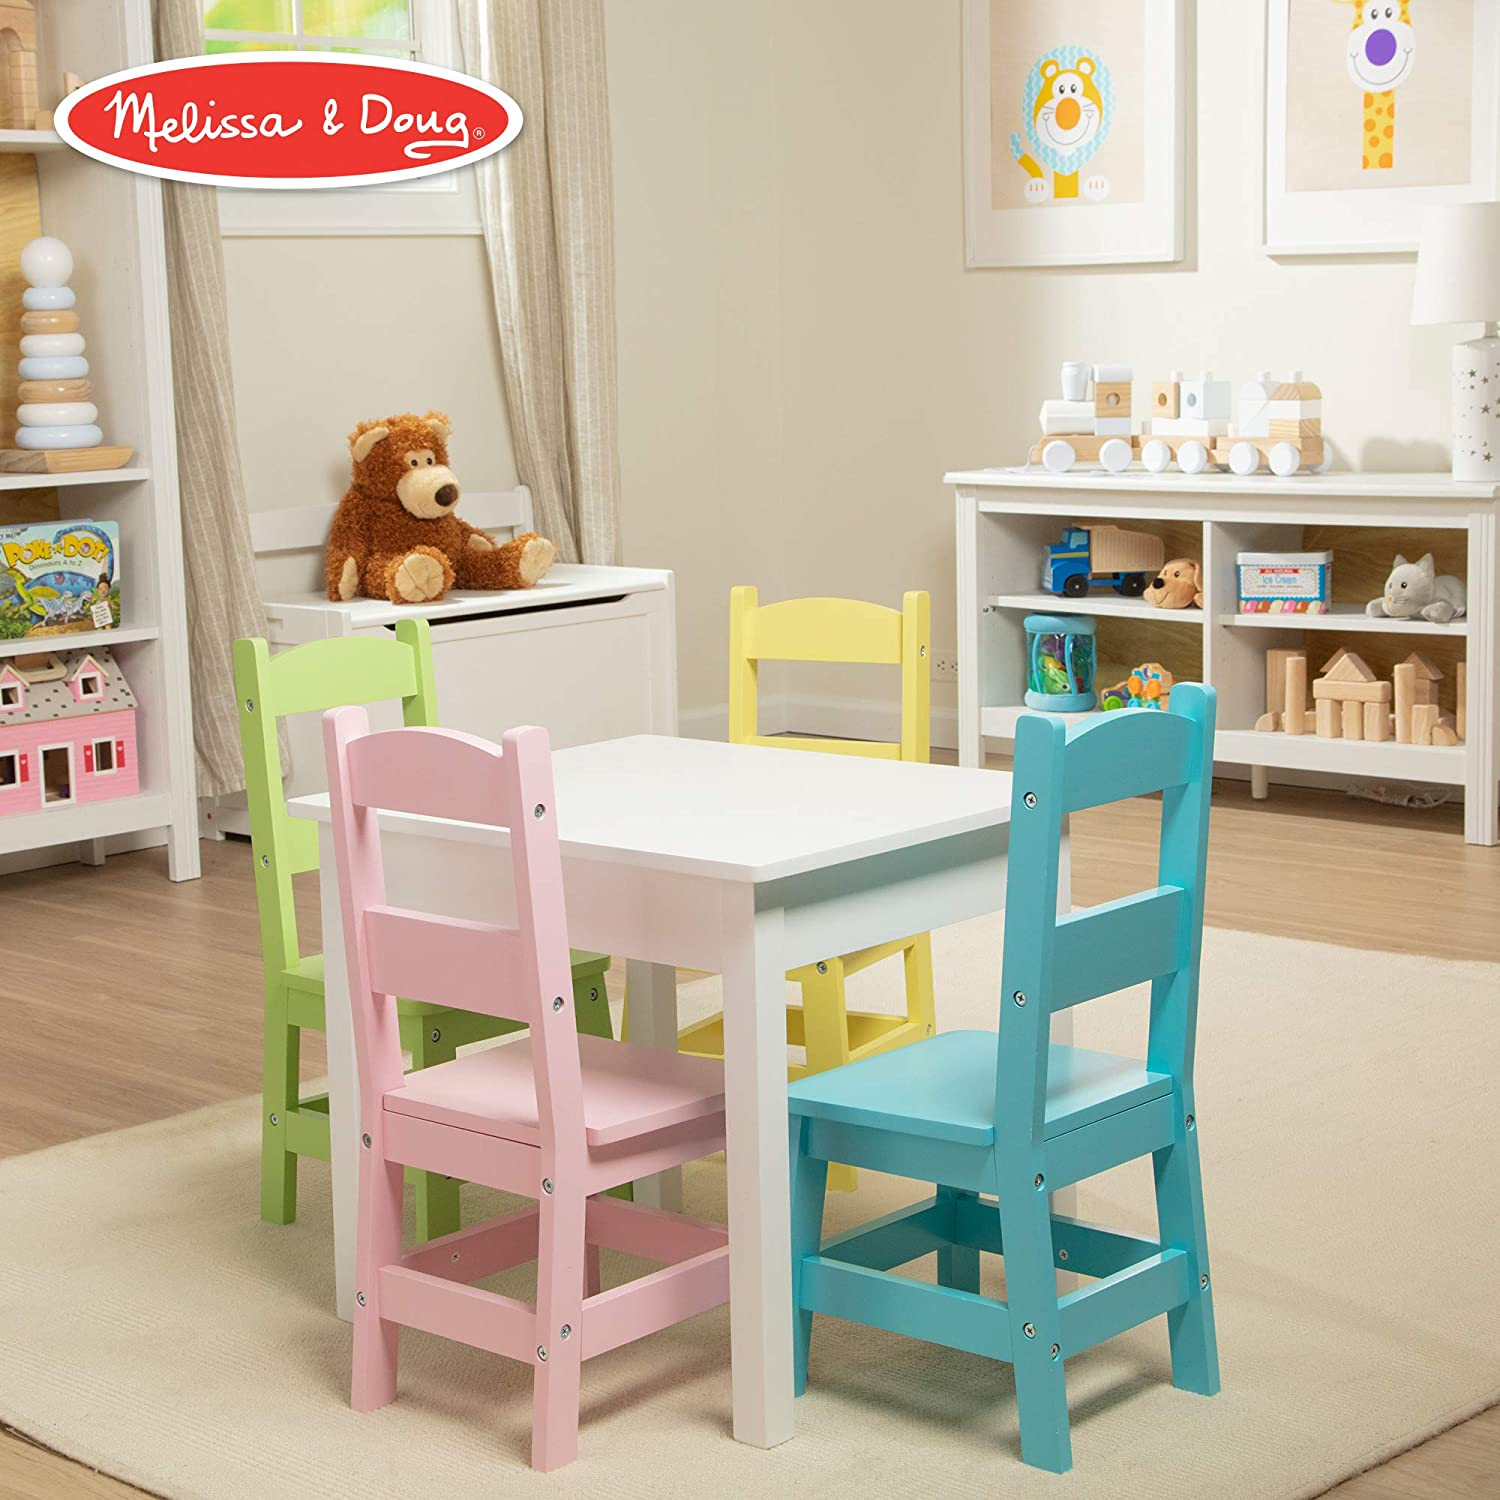 """Melissa & Doug Kids Furniture, Wooden Table & 4 Chairs (White Table, Pastel Pink, Yellow, Green, Blue Chairs, 20.5"""" H x 23.5"""" W x 20"""" L)"""